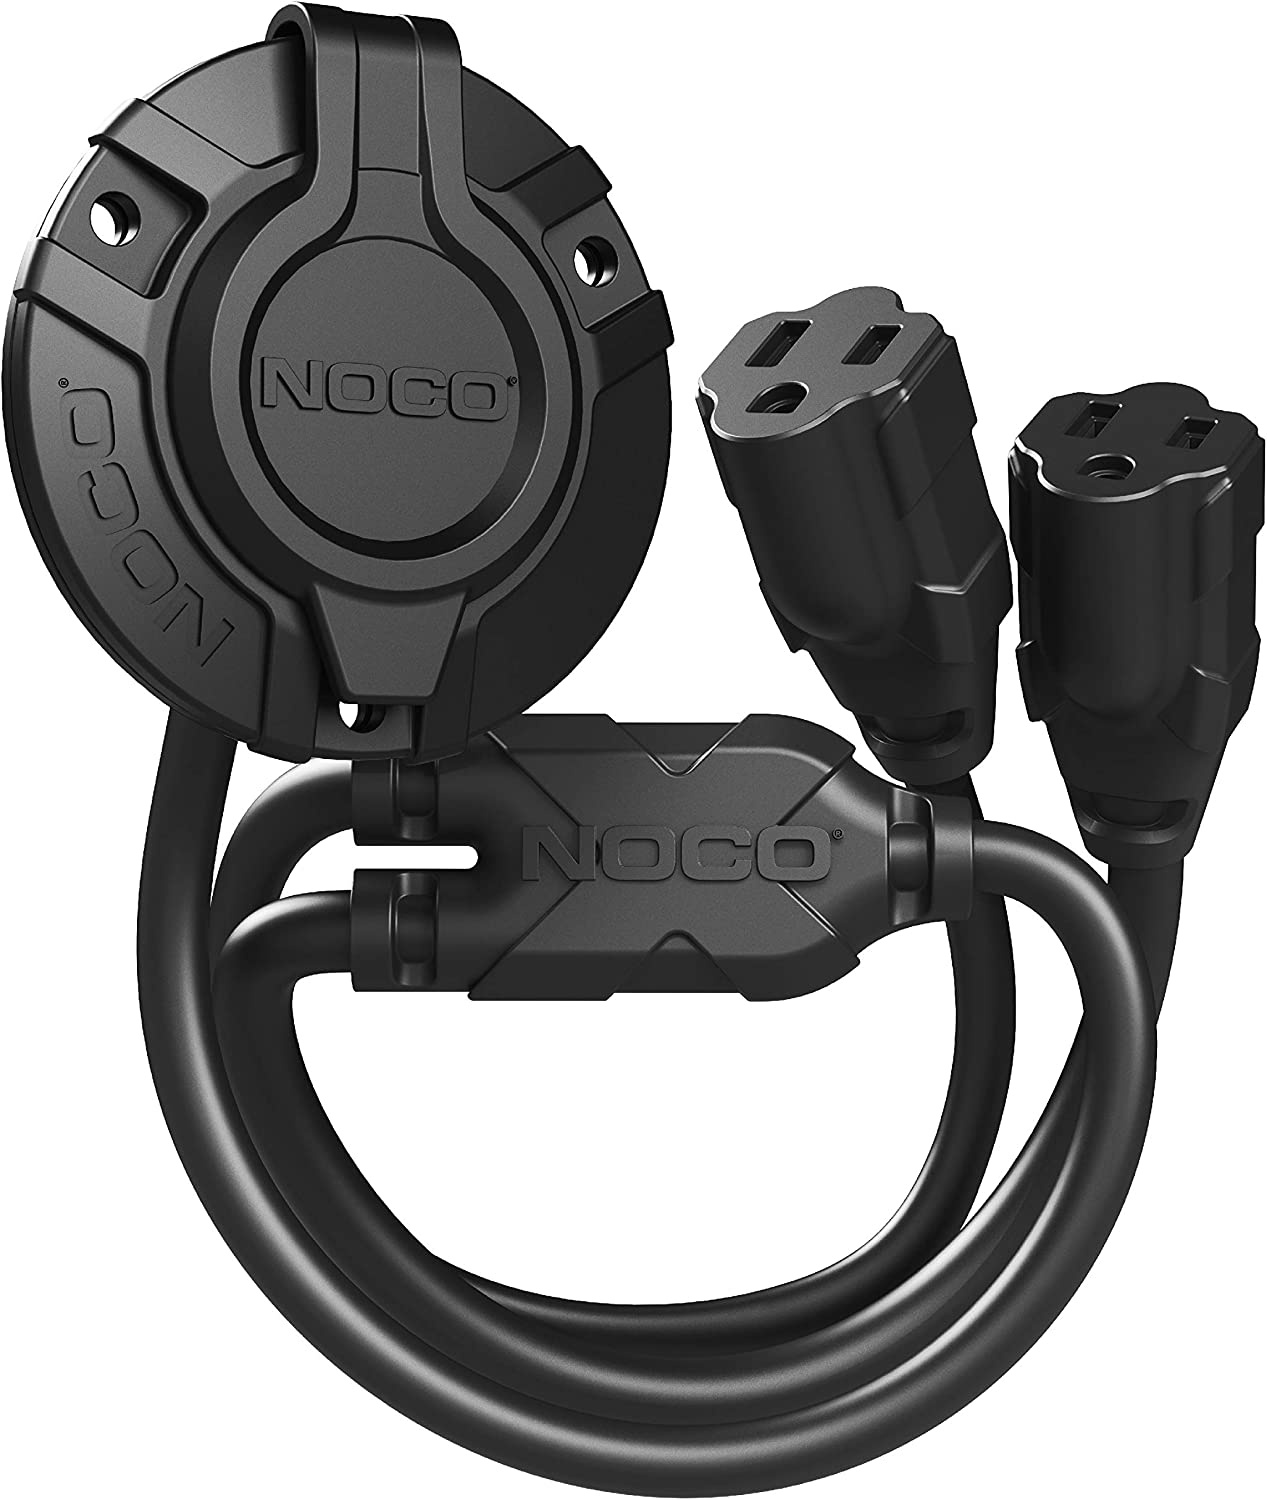 NOCO GCP2 15 Amp 125V AC Port Plug Power Inlet with Dual 18-Inch Integrated Extension Cords: Automotive